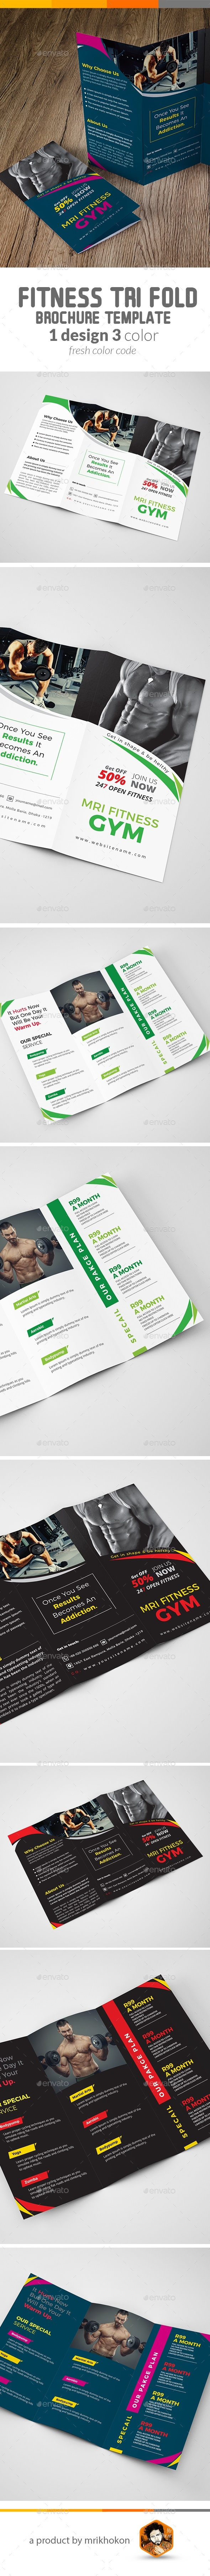 Fitness/Gym Tri fold Brochure